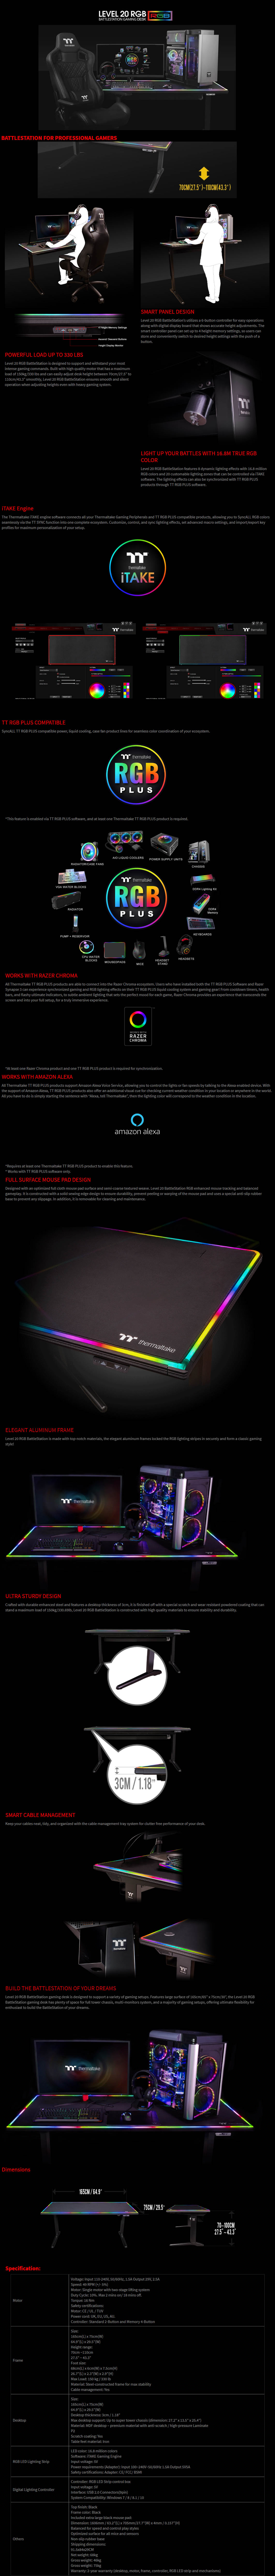 A large marketing image providing additional information about the product Thermaltake Level 20 BattleStation RGB Gaming Desk - Additional alt info not provided